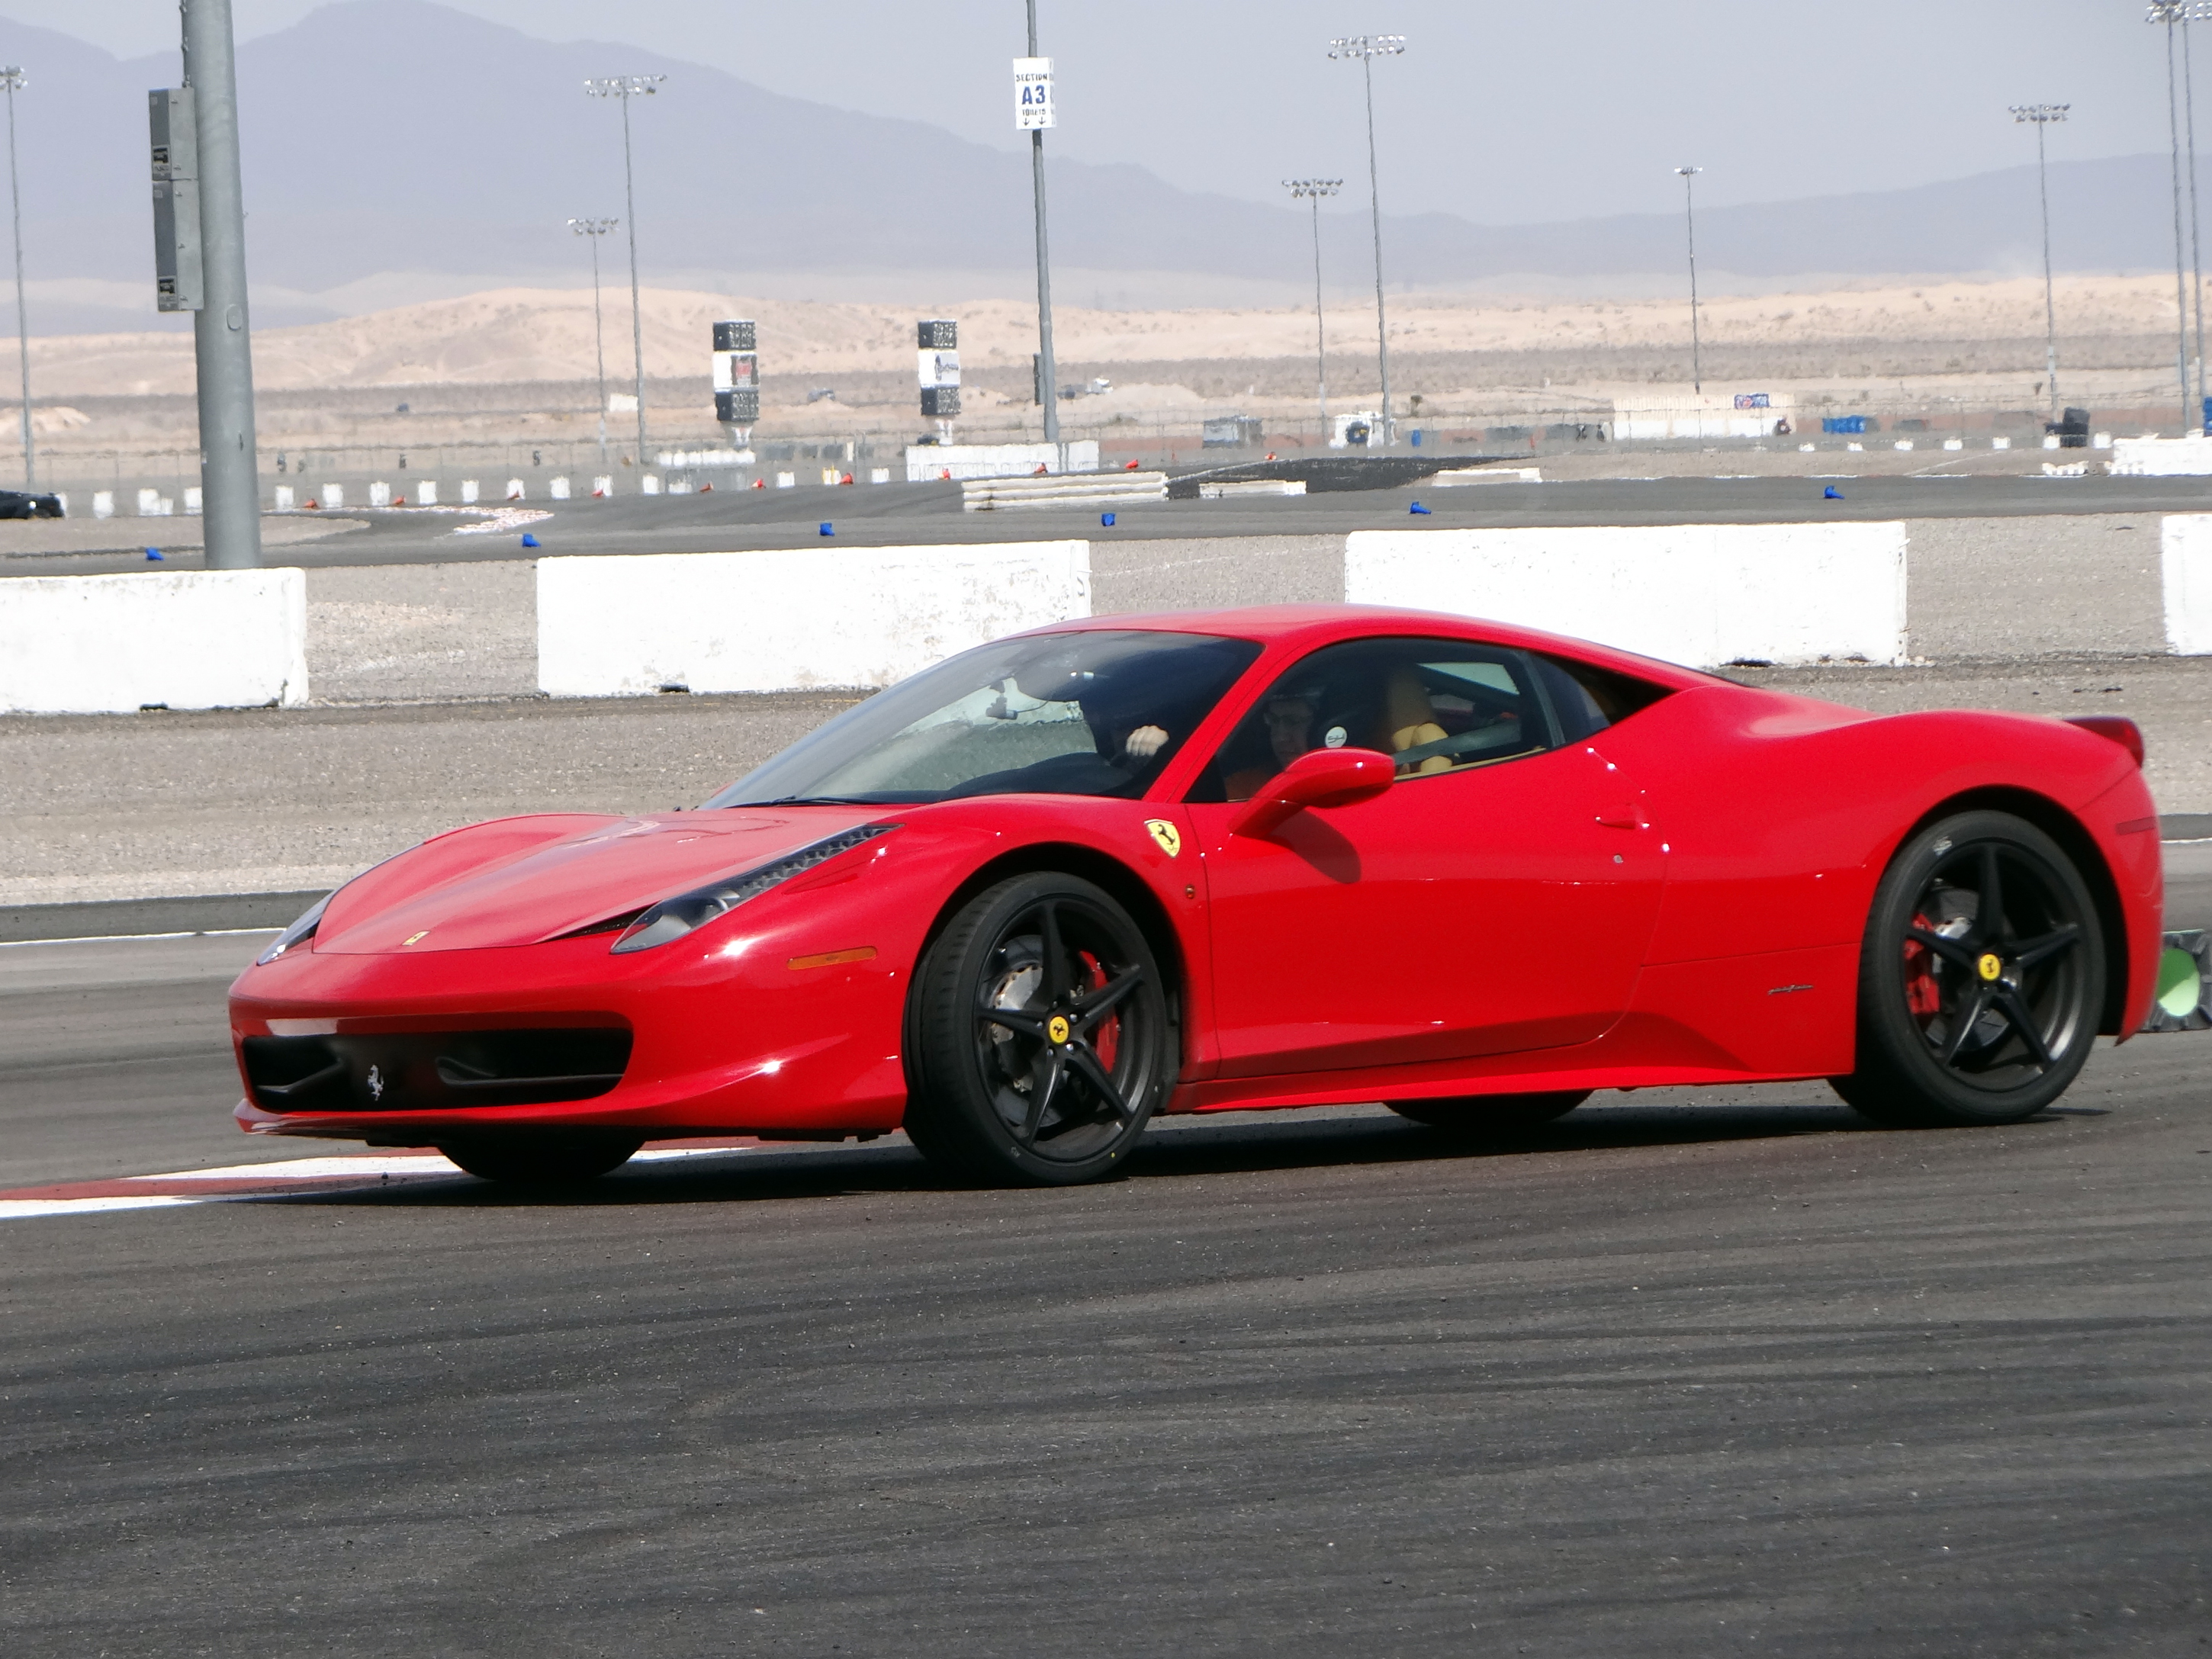 ferrari 458 italia experience at exotics racing vegas. Black Bedroom Furniture Sets. Home Design Ideas